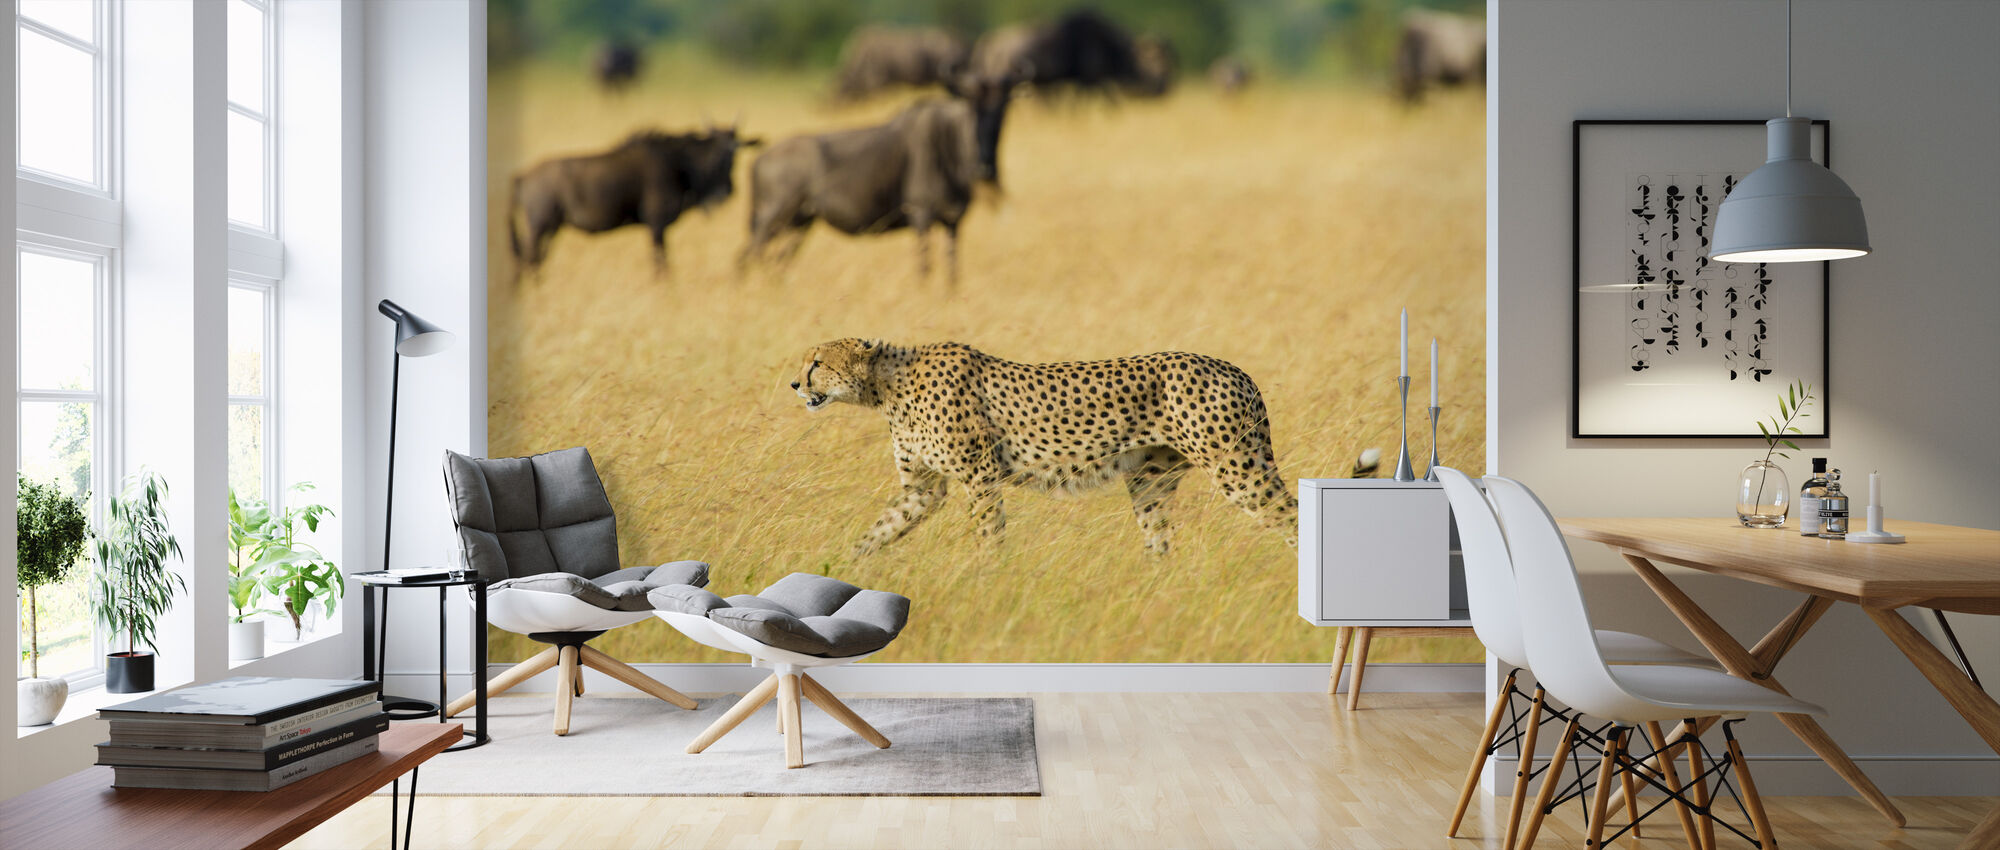 Walking Cheetah - Wallpaper - Living Room